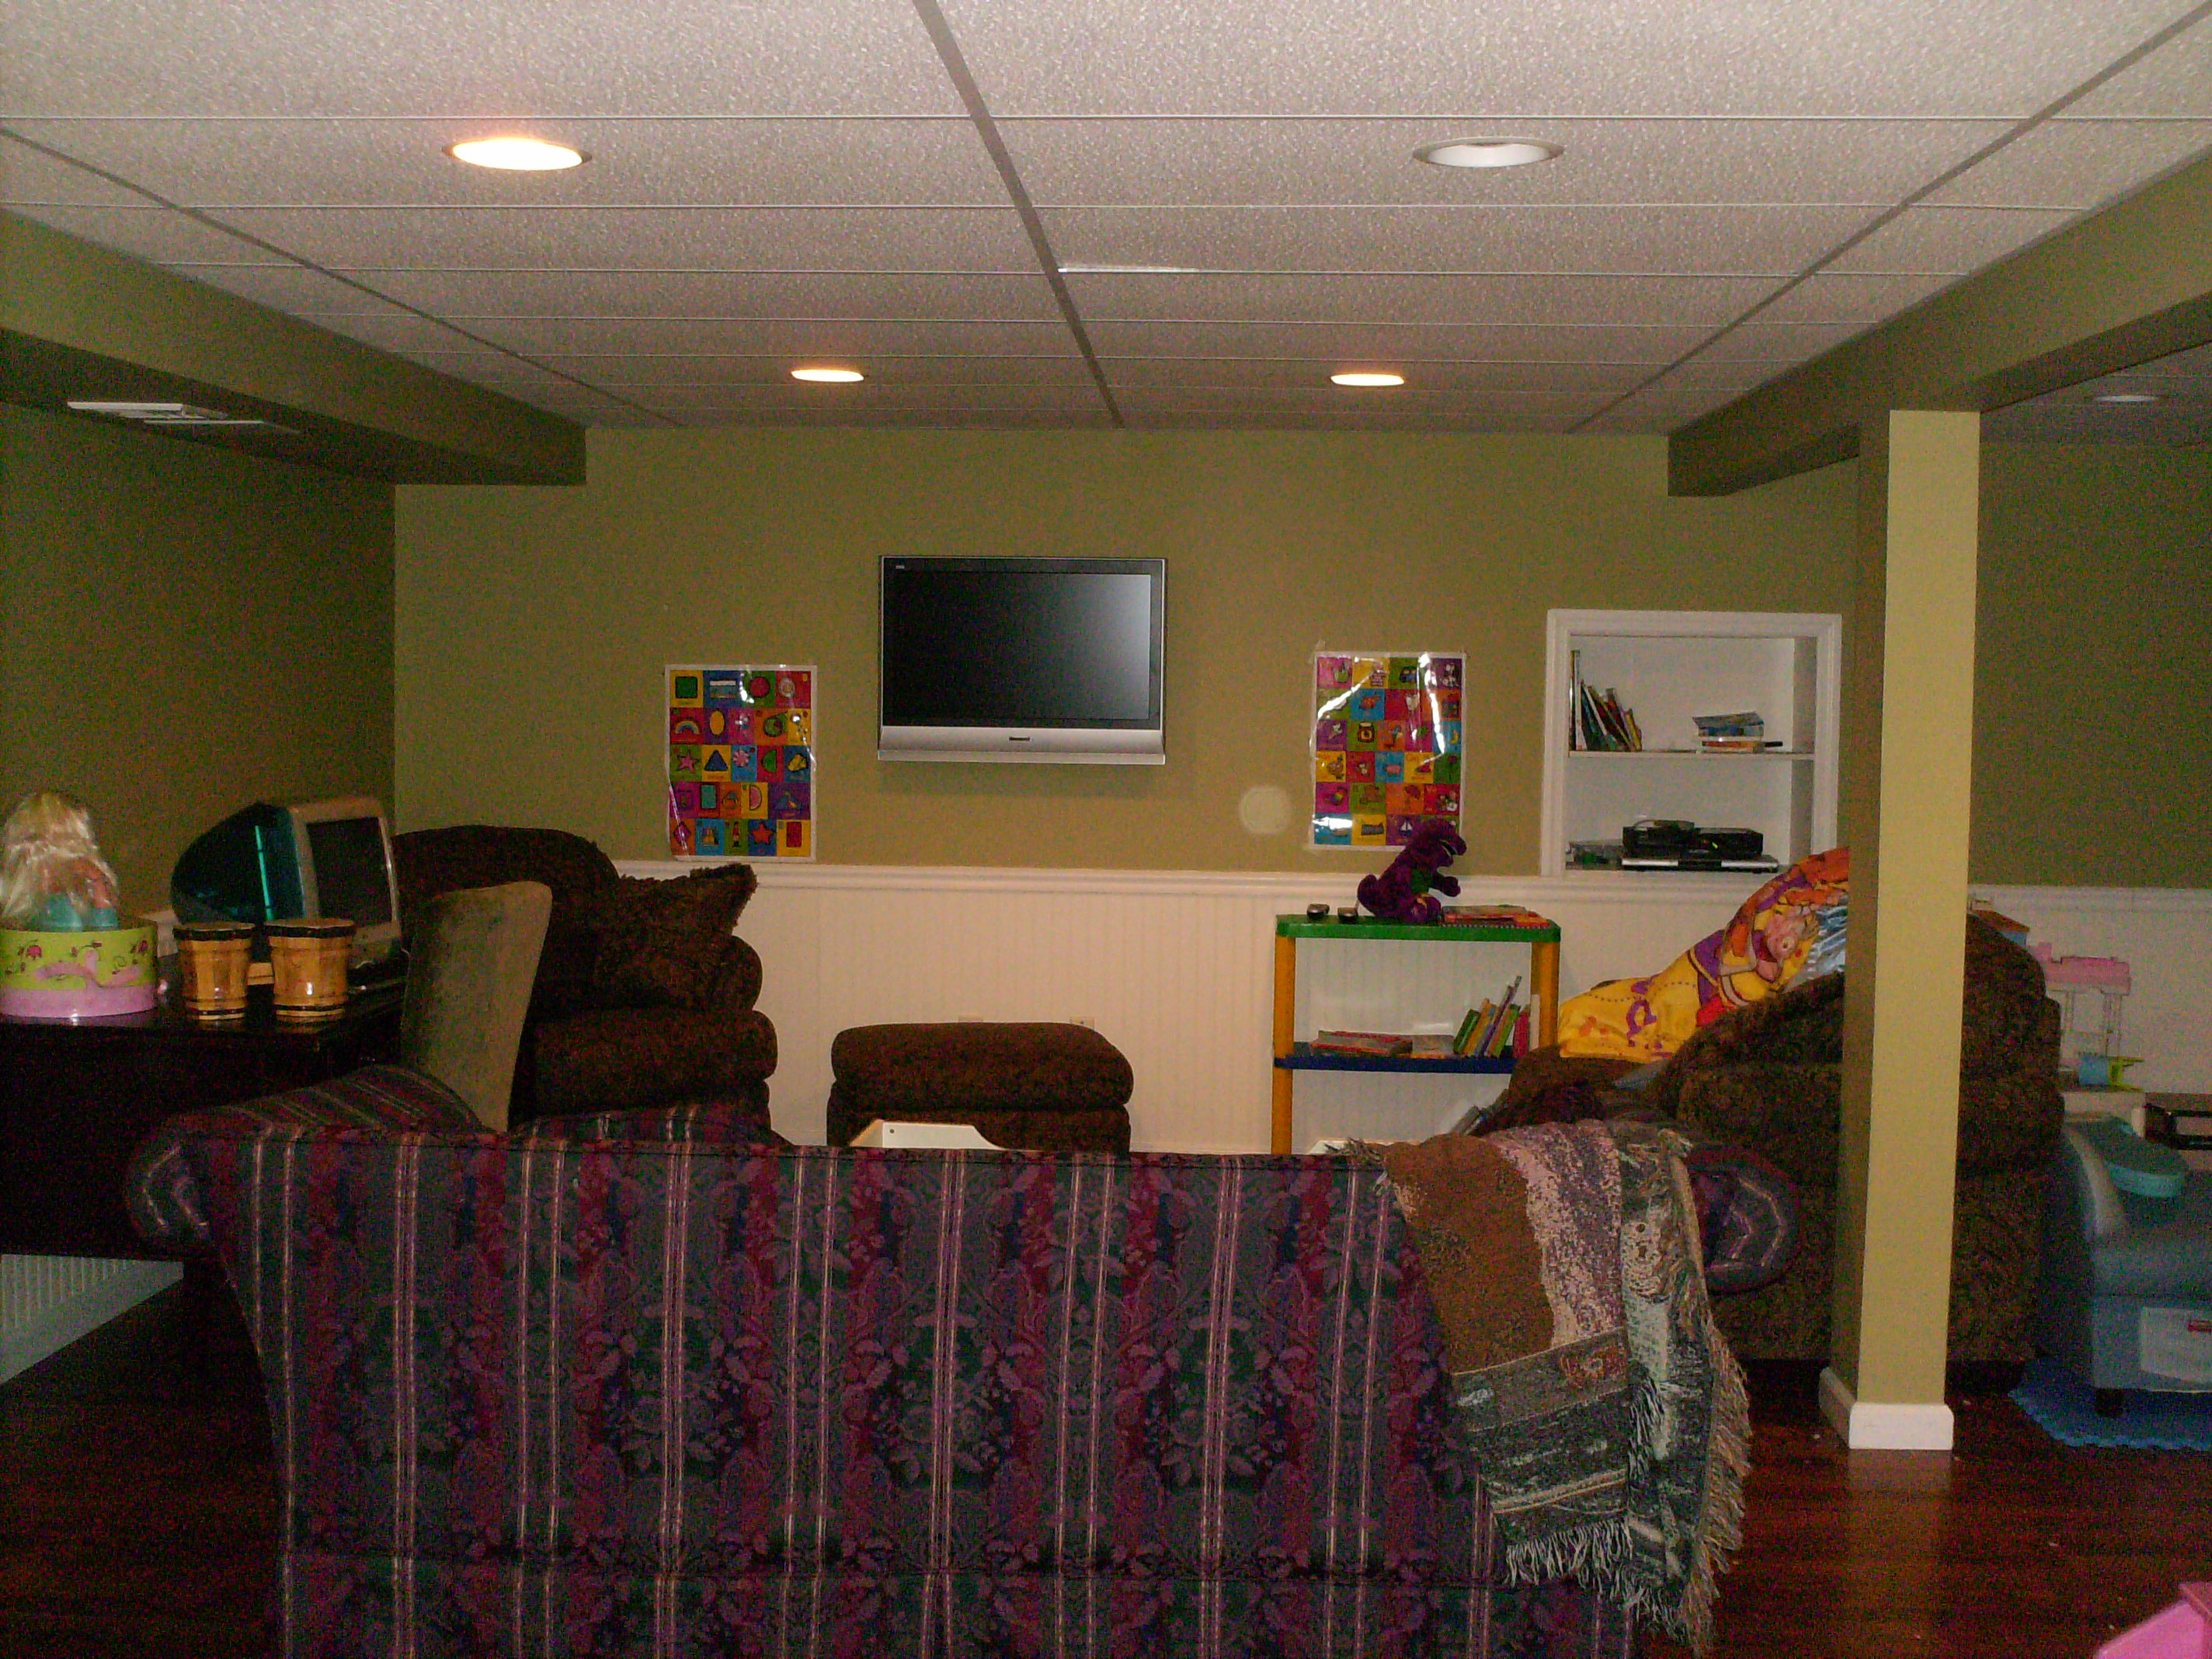 Home Theater Man Tv Installations Surround Sound Tvs Wiring With Cable Box Wires Concealed And Custom White Shelves Built Into Wall To Store Dvd